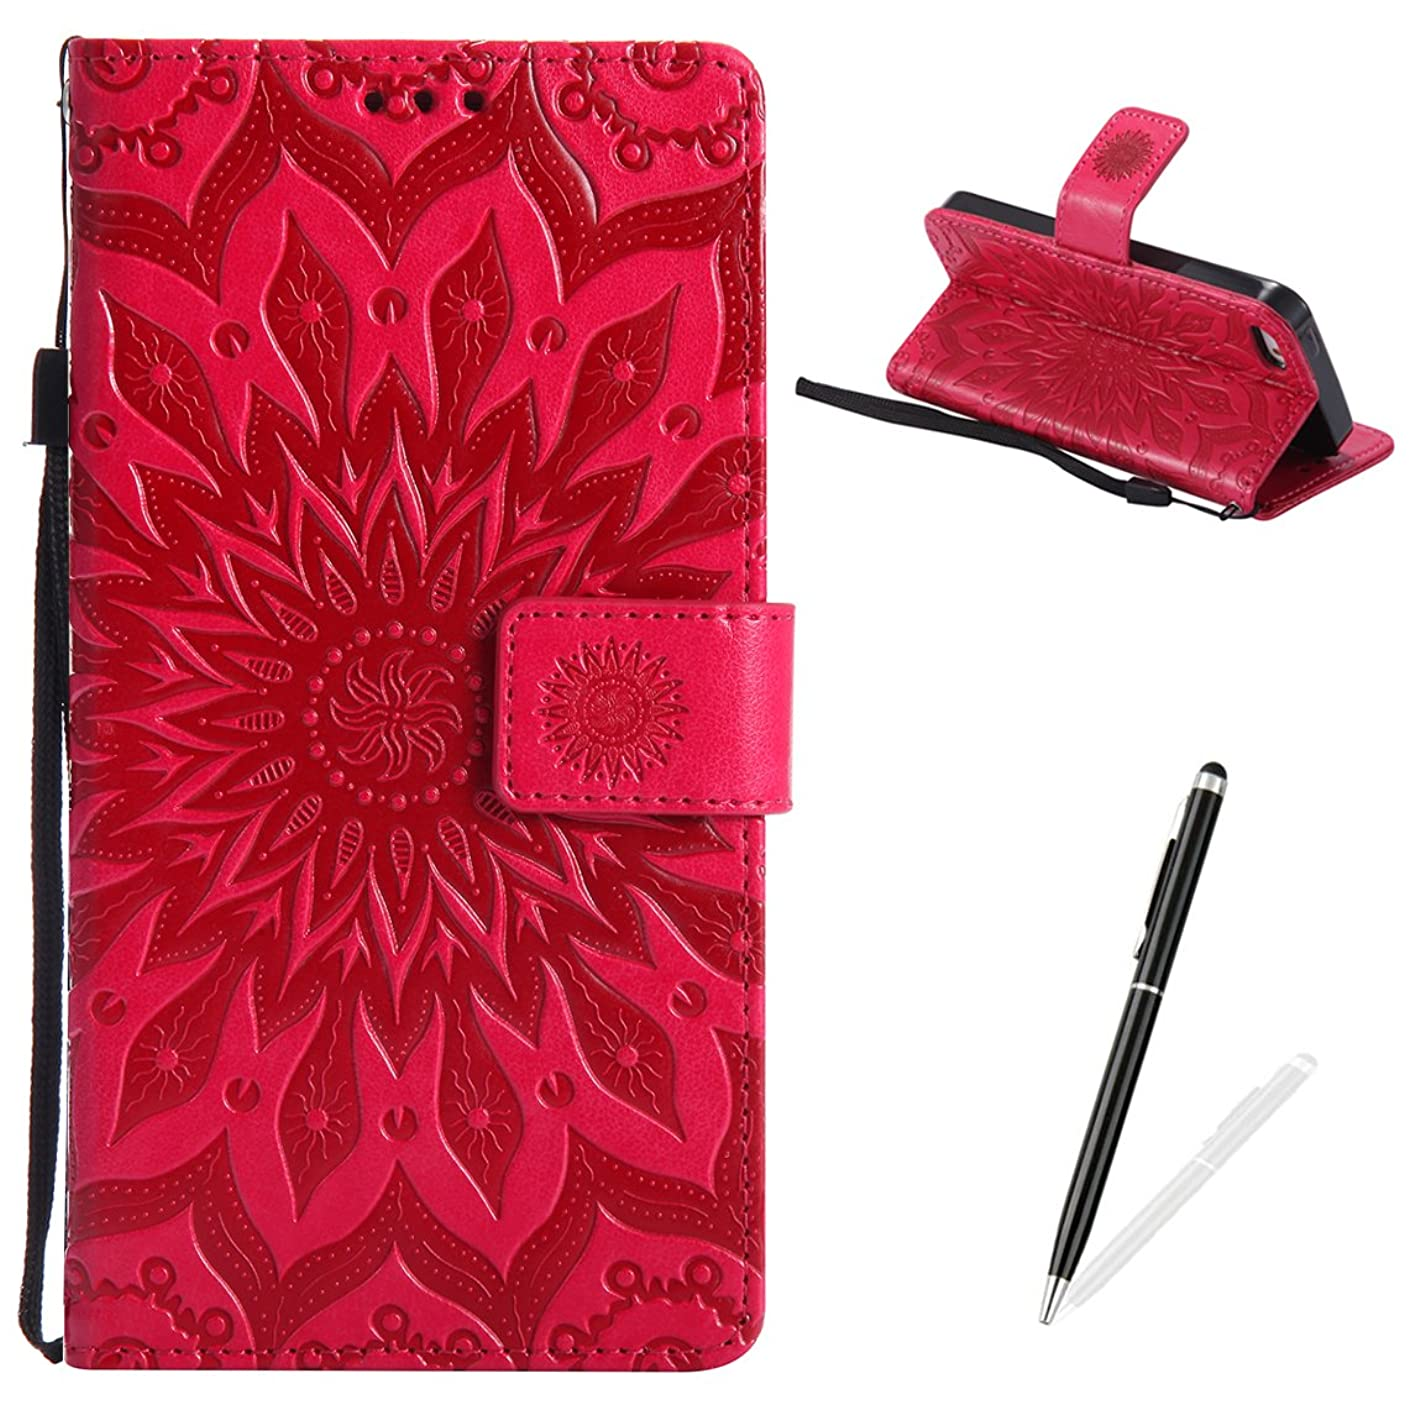 MAGQI iPhone 5 5S SE Case Anti-Scratch Slim Fit Cover, Embossed Mandala Sunflower Serise Luxury Soft PU Leather Stand Vintage Retro Wristlet Flip Wallet Card Slots Skin Shell